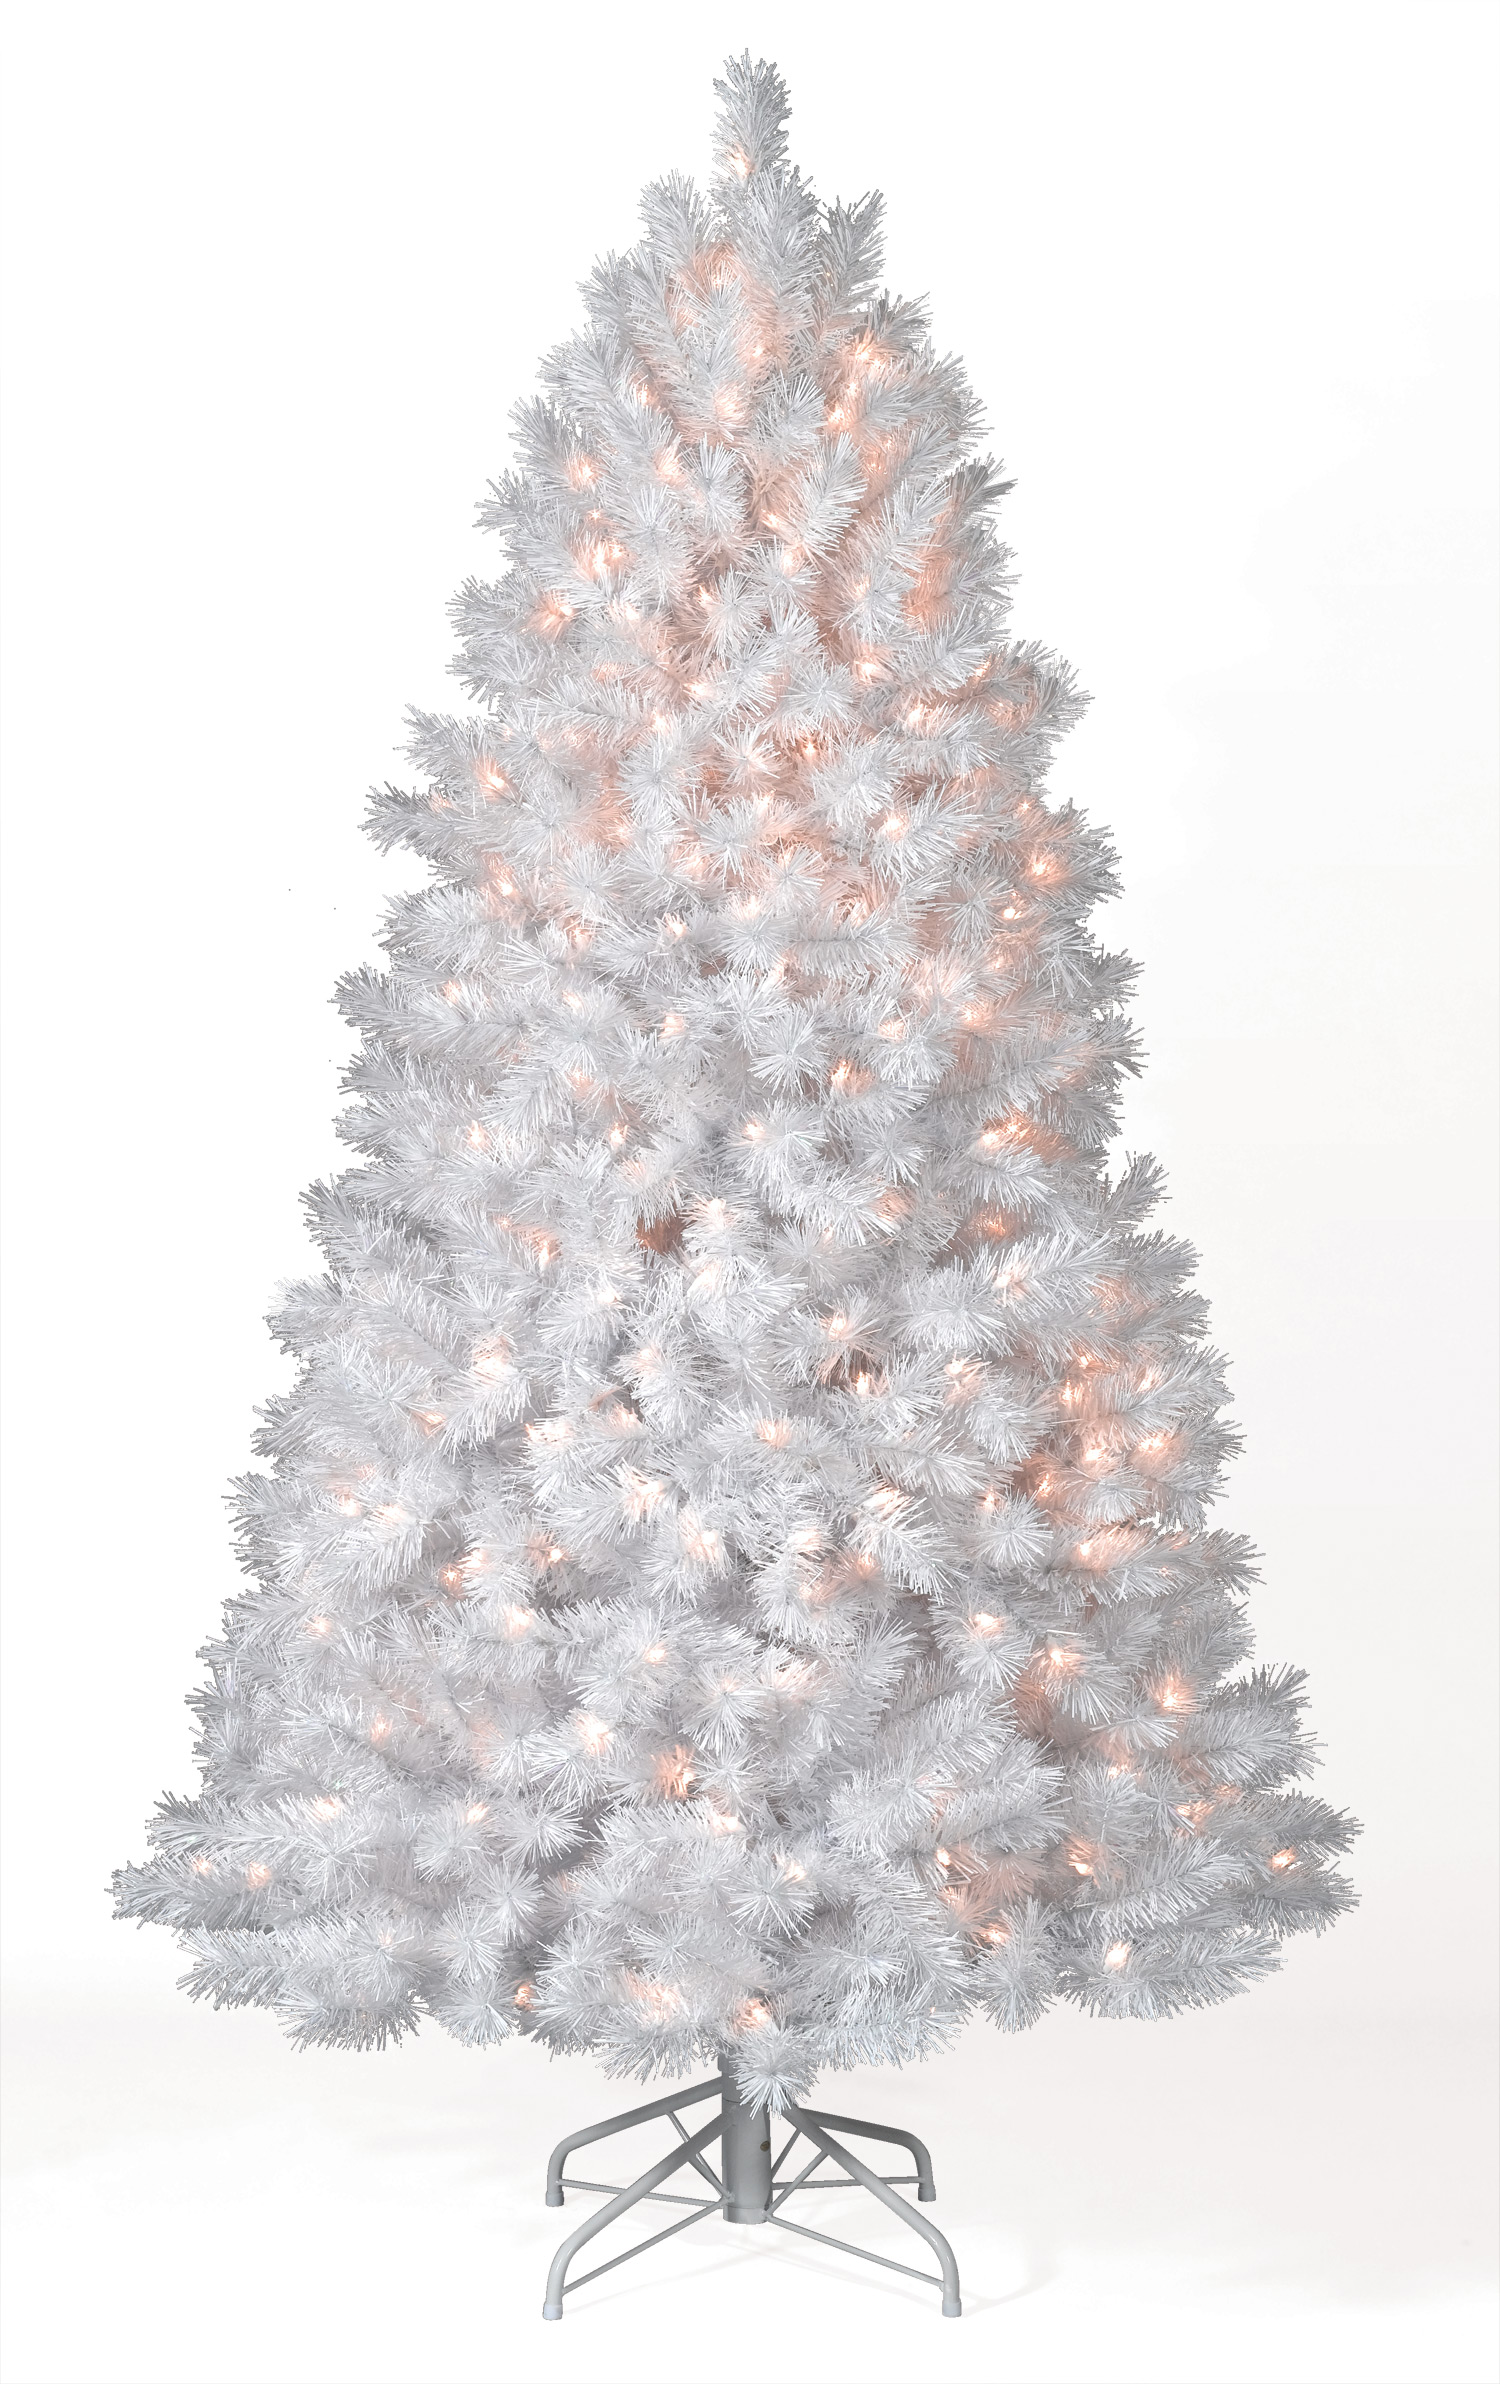 7 foot white christmas tree with multi lights - Christmas Trees With Lights